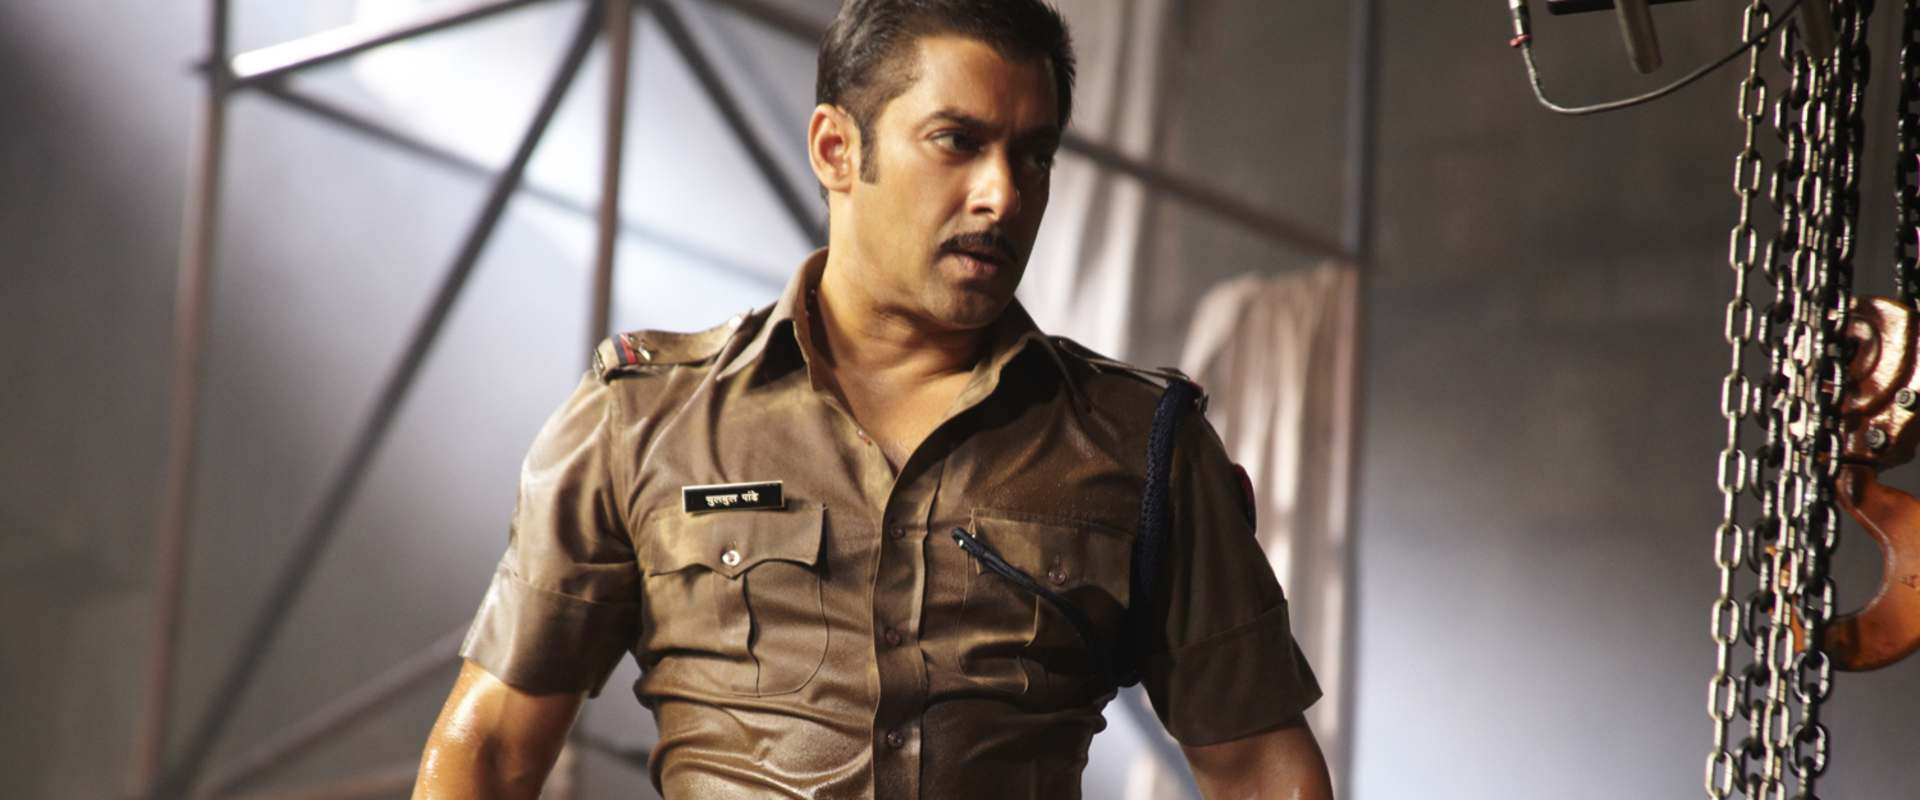 Dabangg background 1